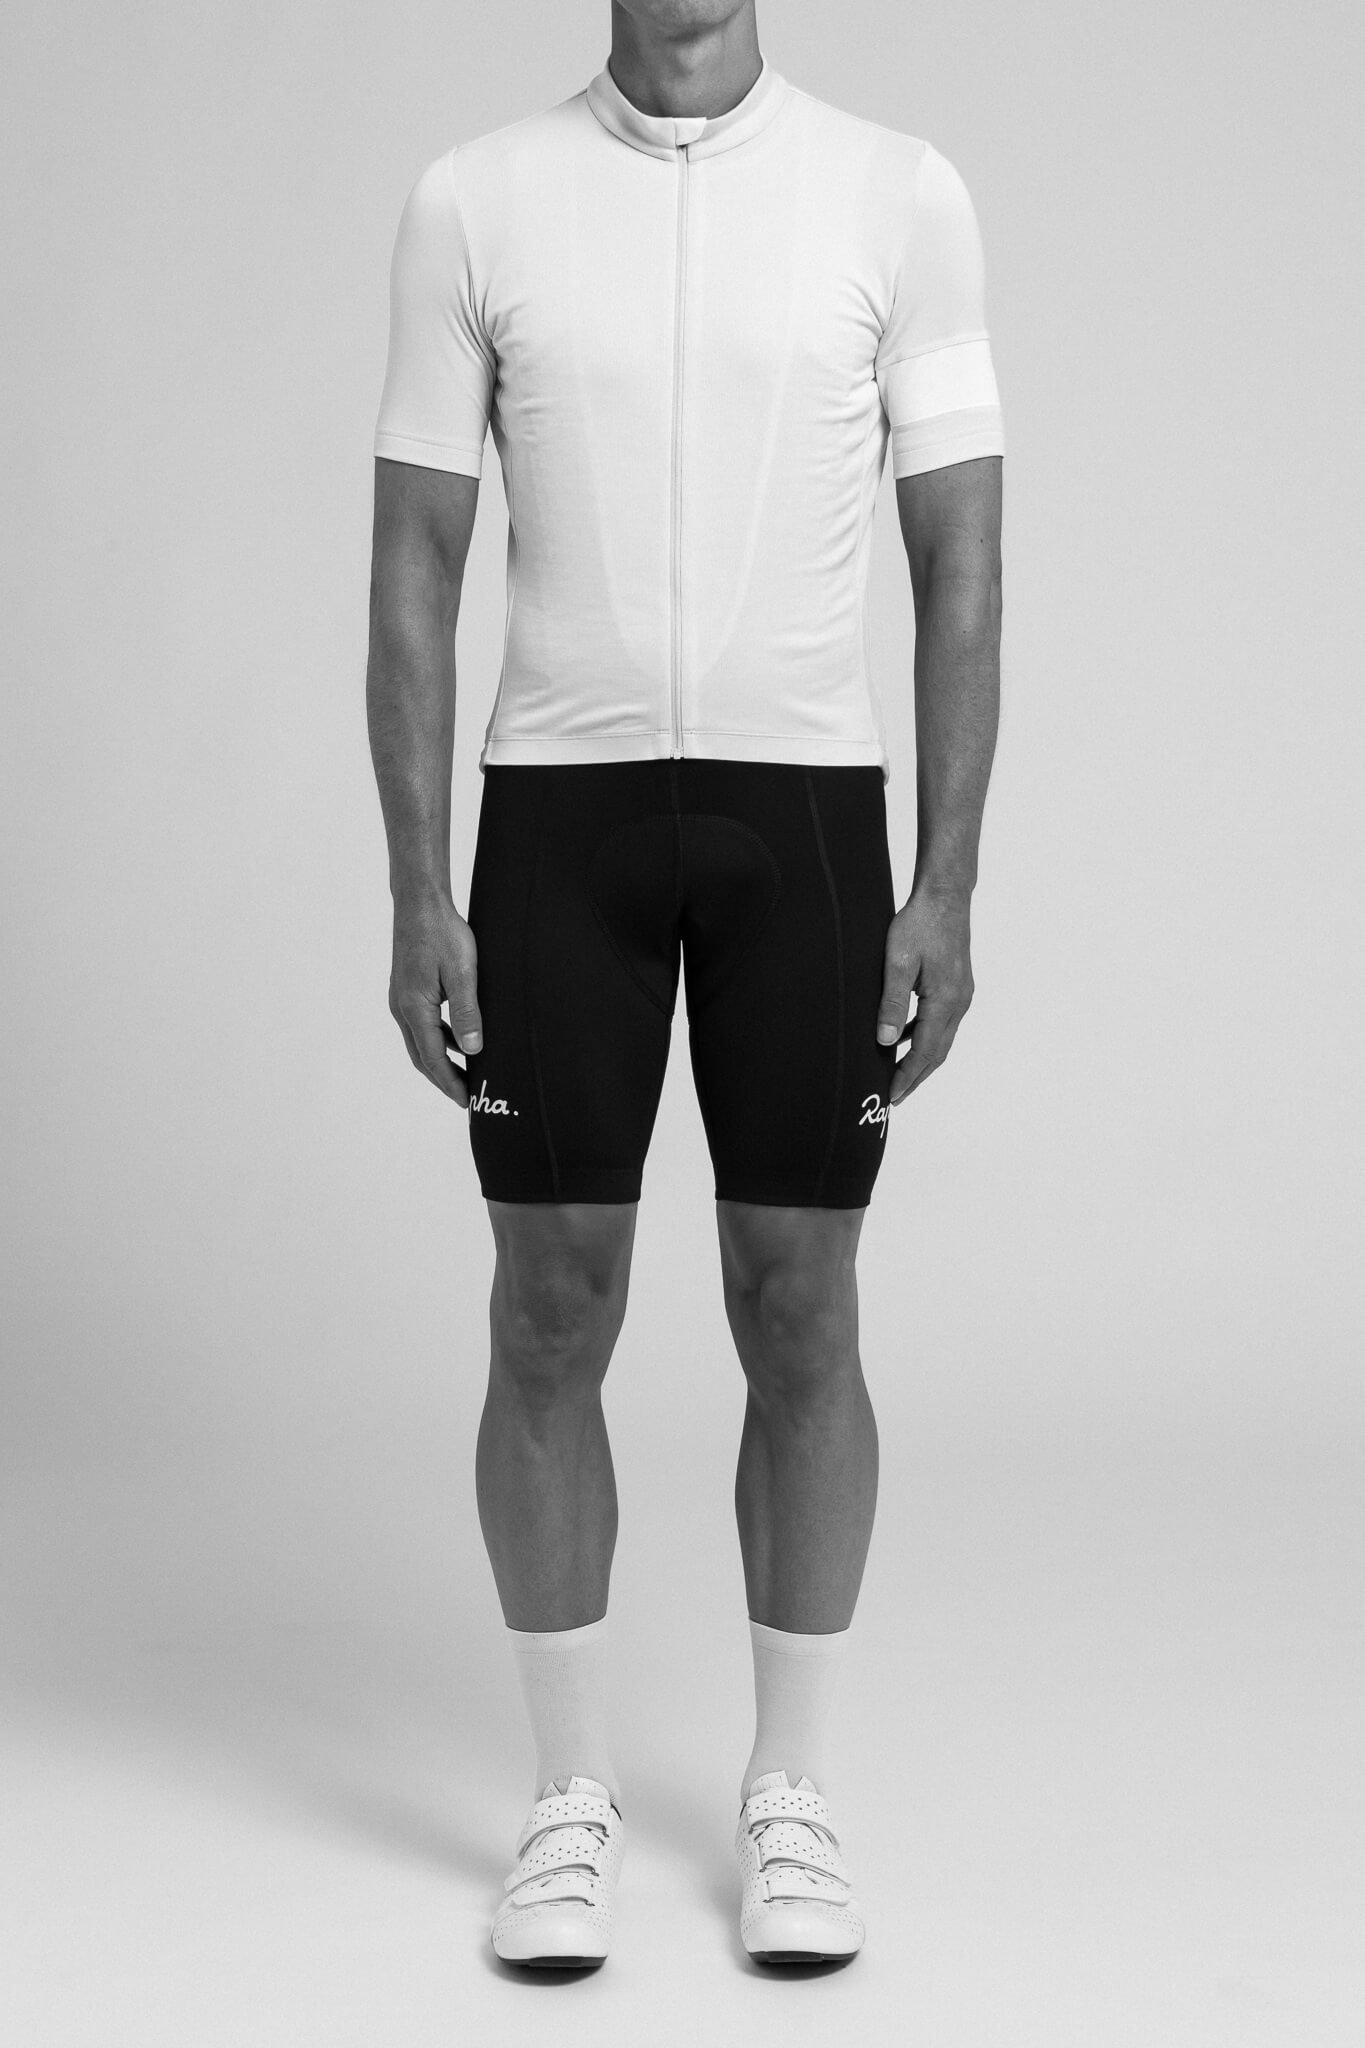 76838baba98 Men's CANYON//SRAM Core Jersey | Rapha Men's Cycling Jersey | Rapha